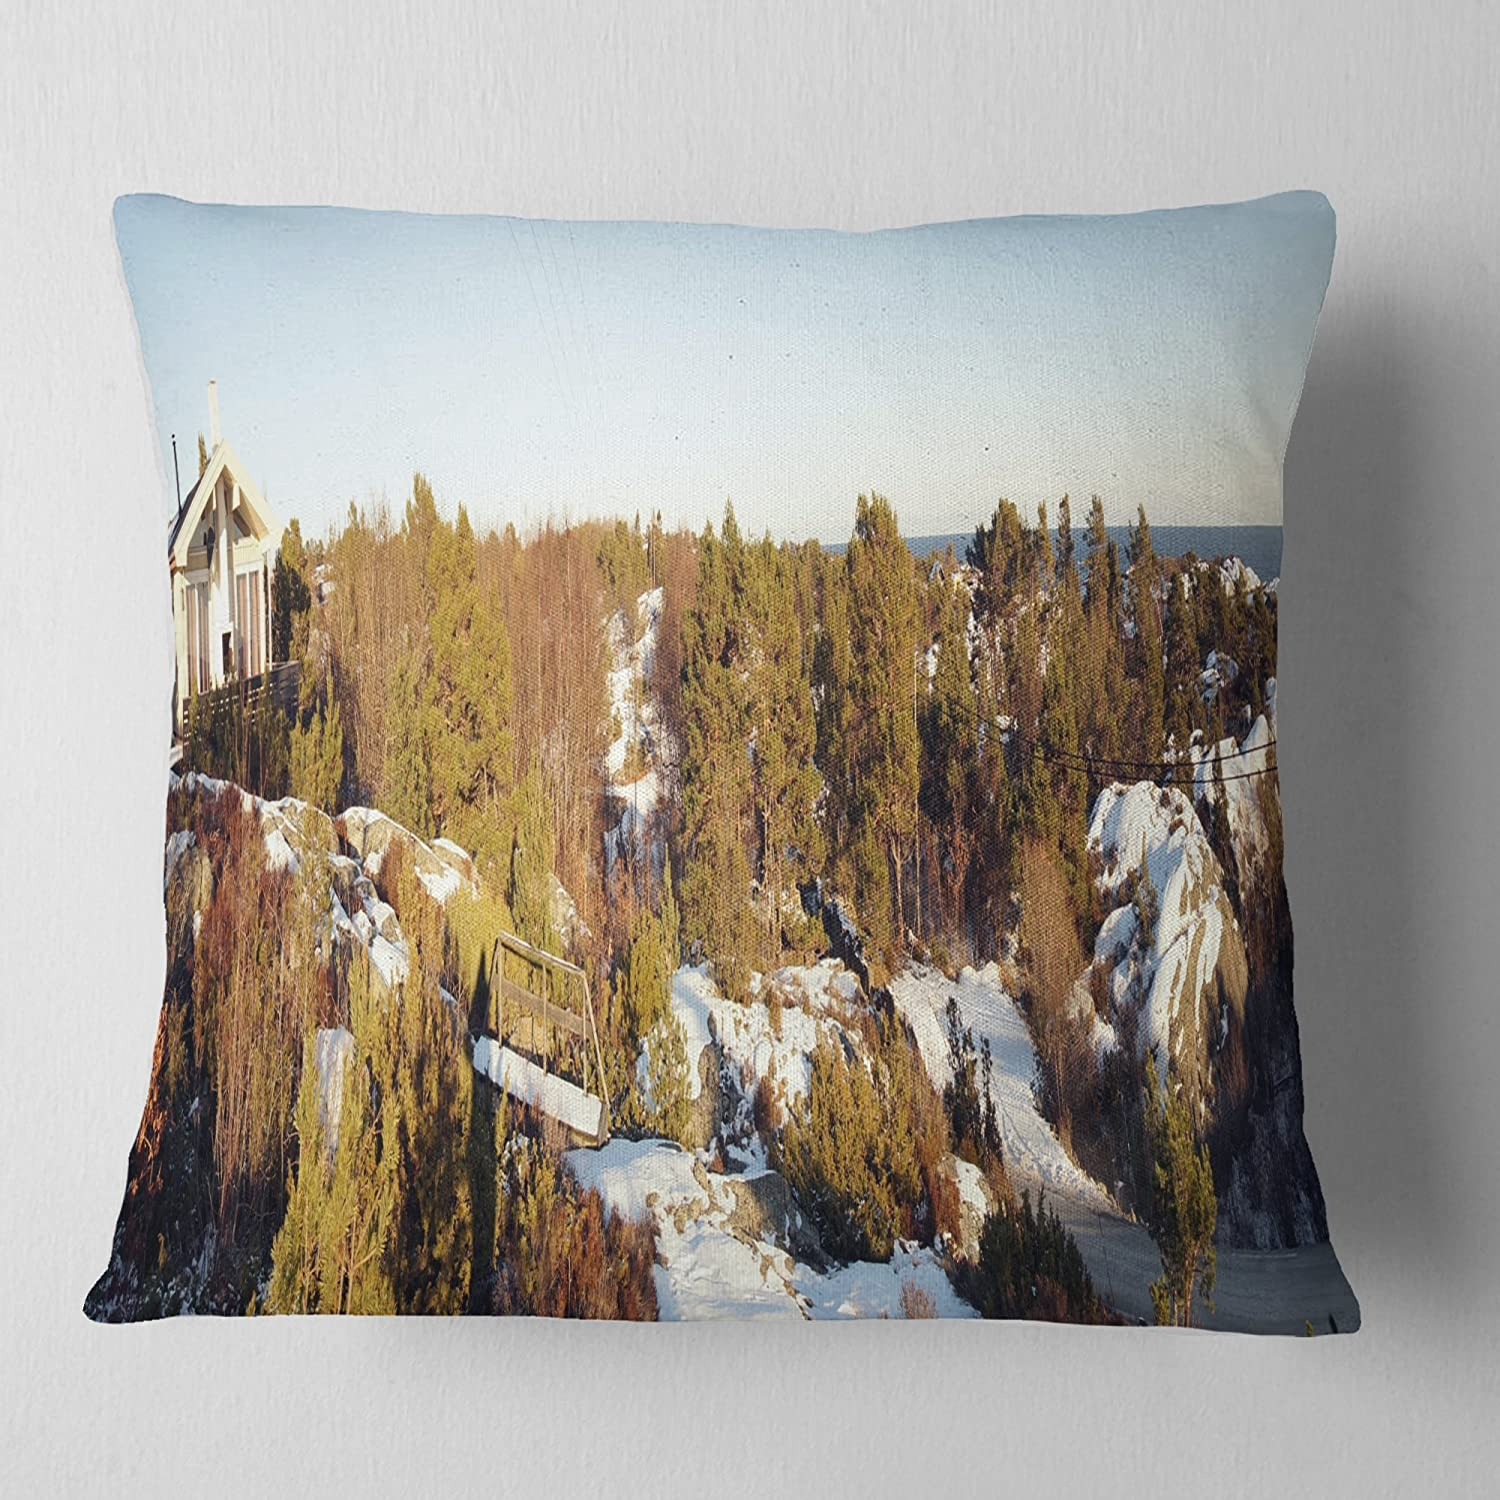 Sofa Throw Pillow 16 in in Designart CU11154-16-16 Rocky Coast with Wooden Cottage Landscape Printed Cushion Cover for Living Room x 16 in Insert Side